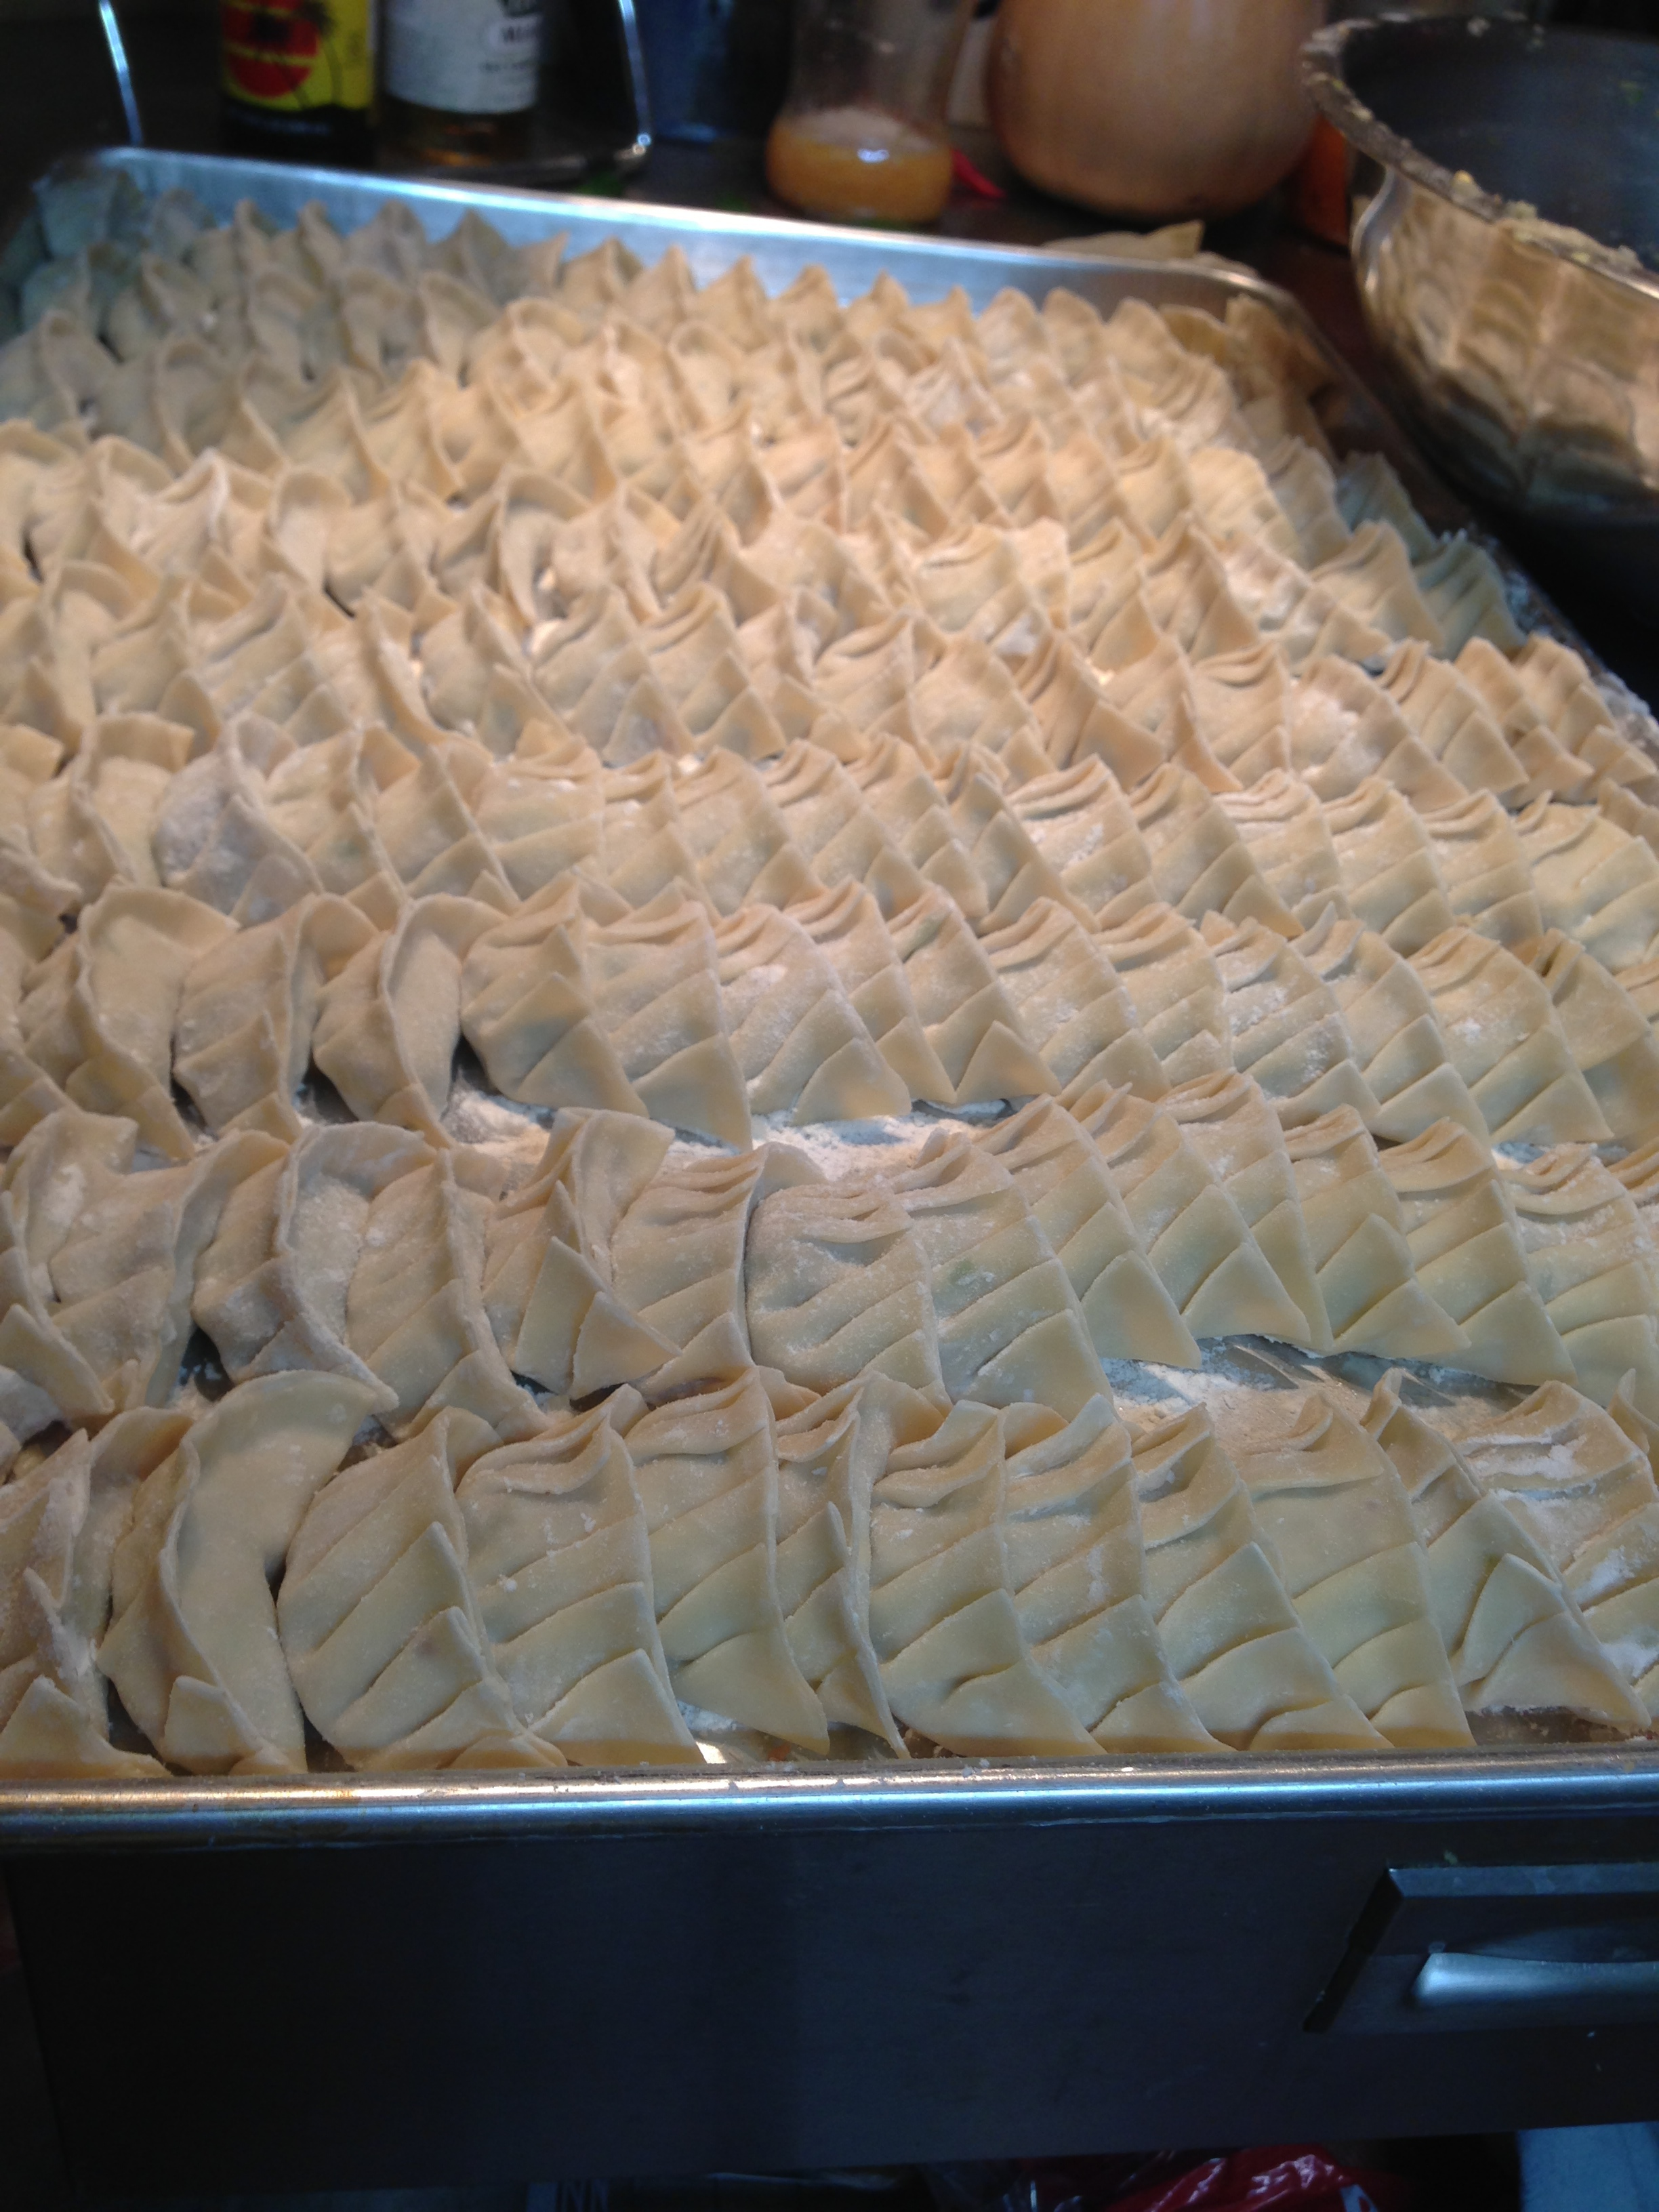 Remember the dumplings we made together?